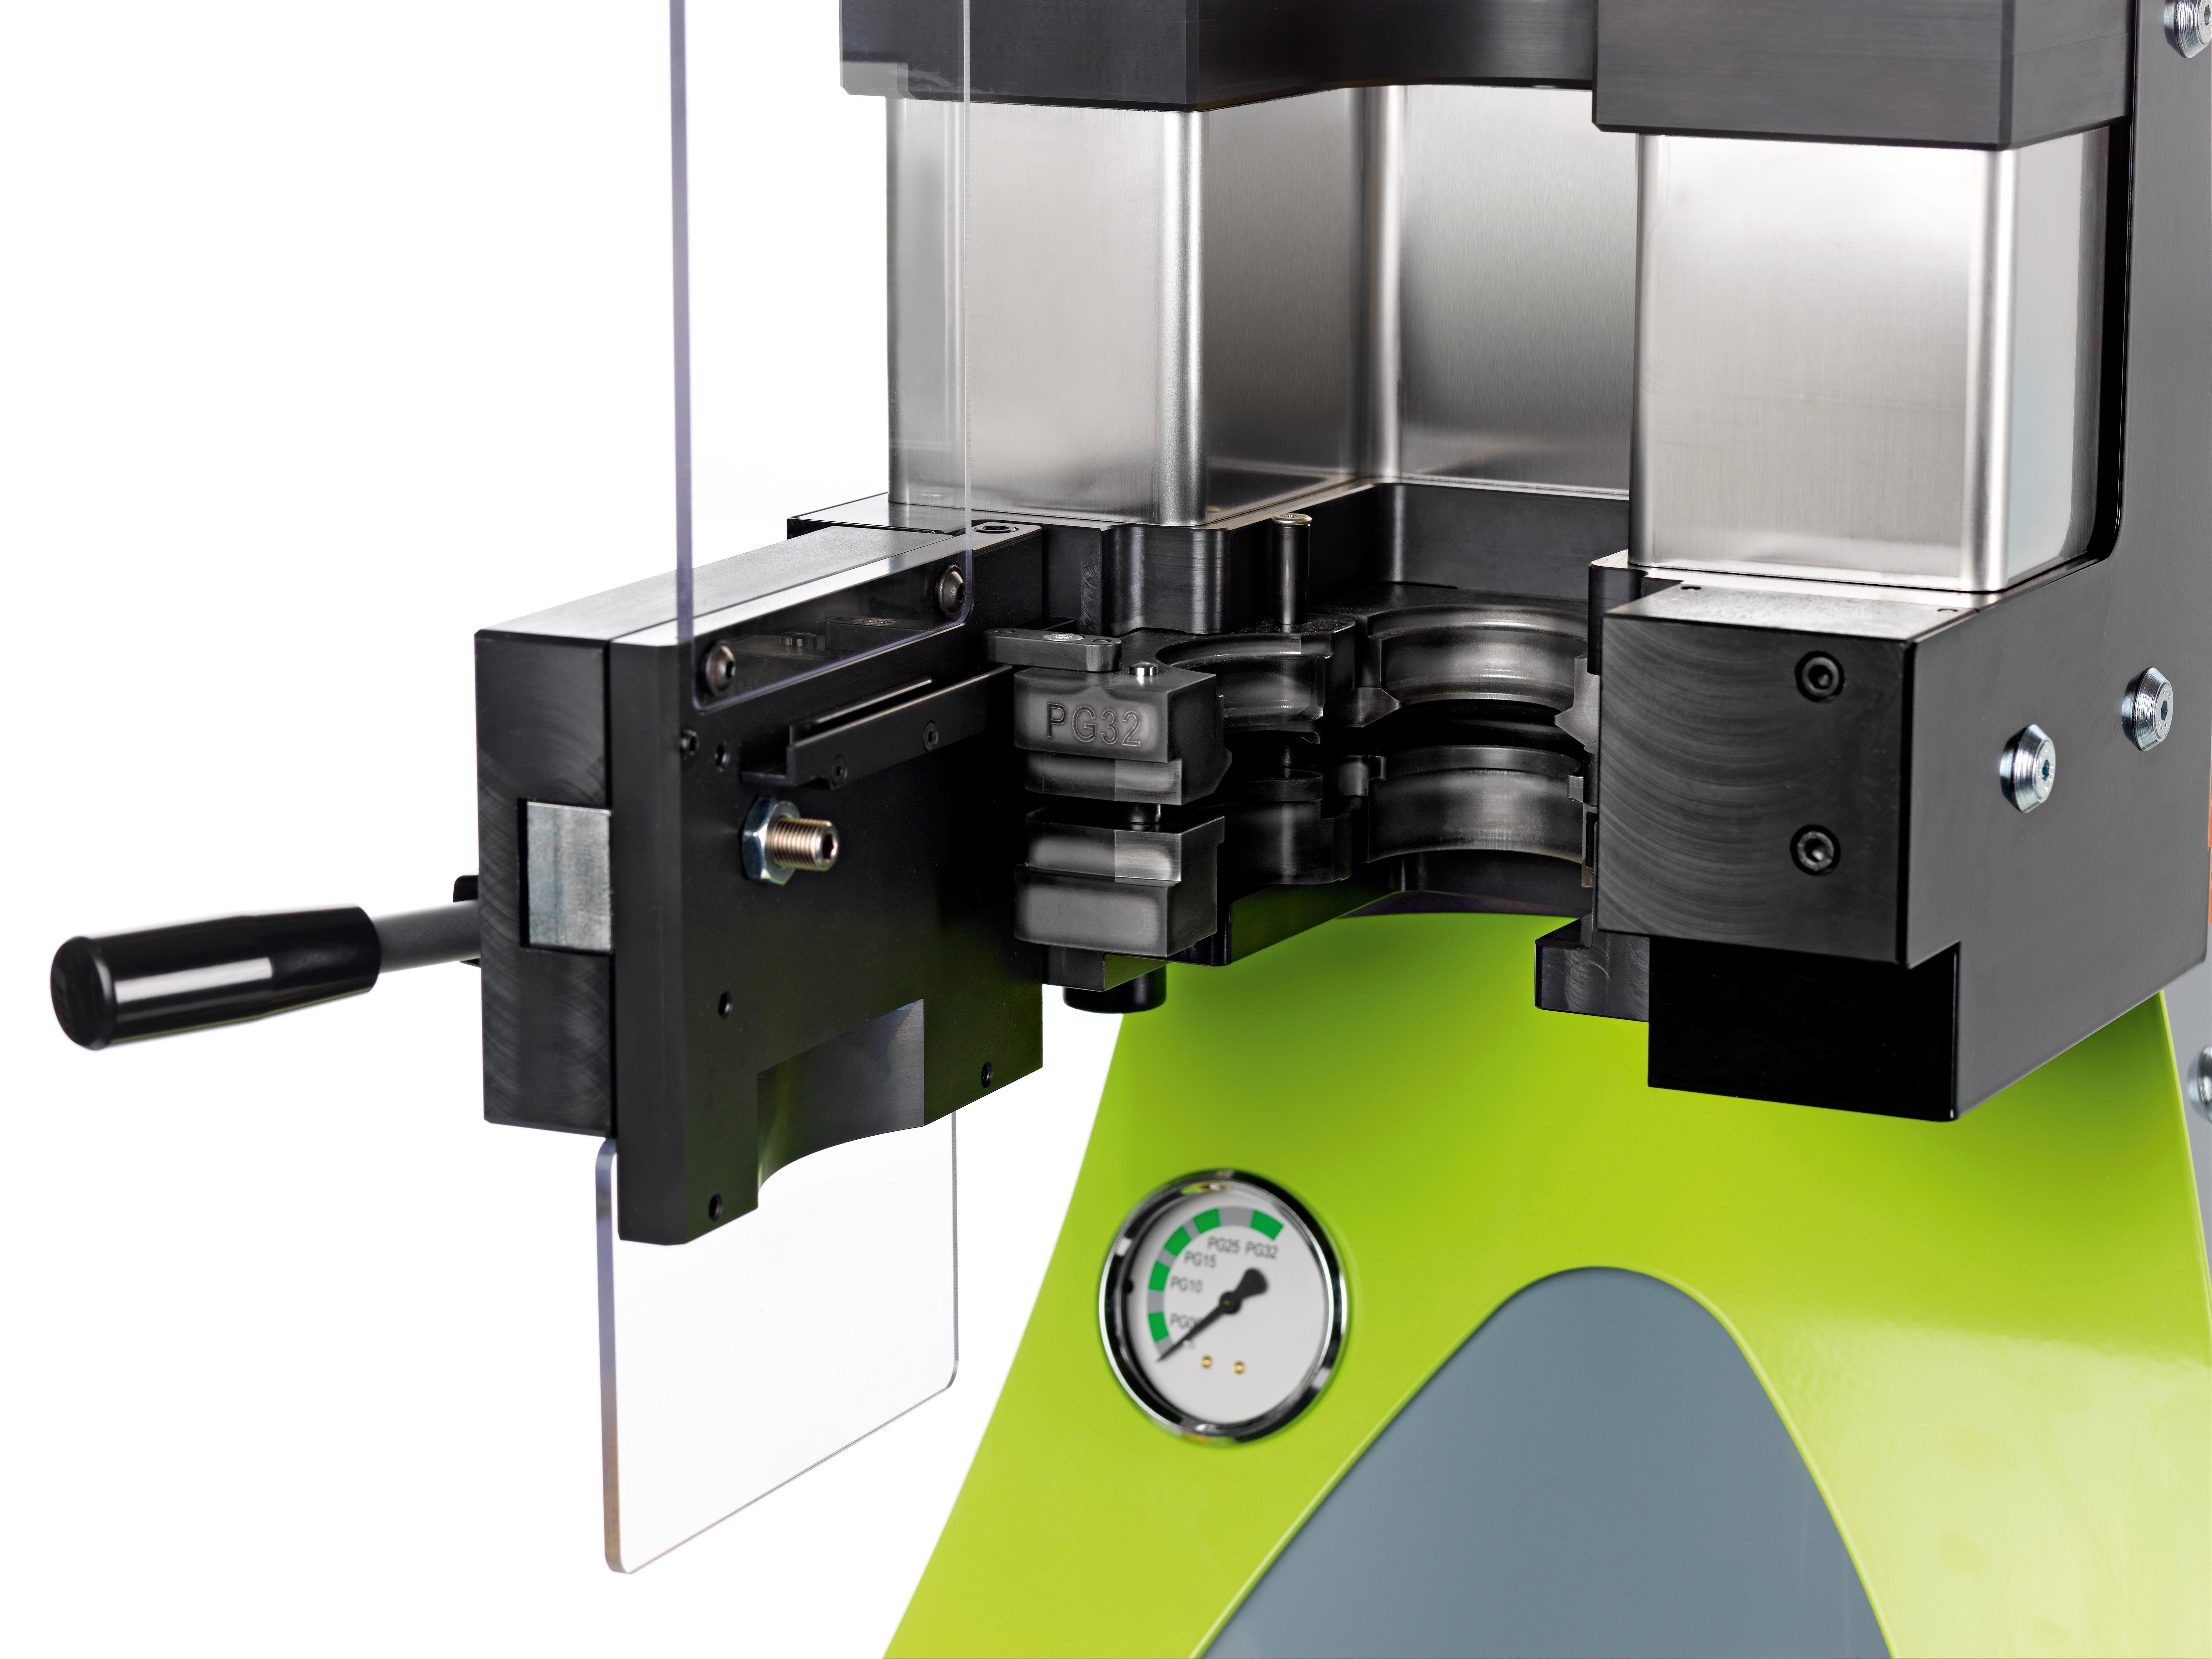 Fully Automated Toolrooms Are the Future – But Not for Shrink-fit